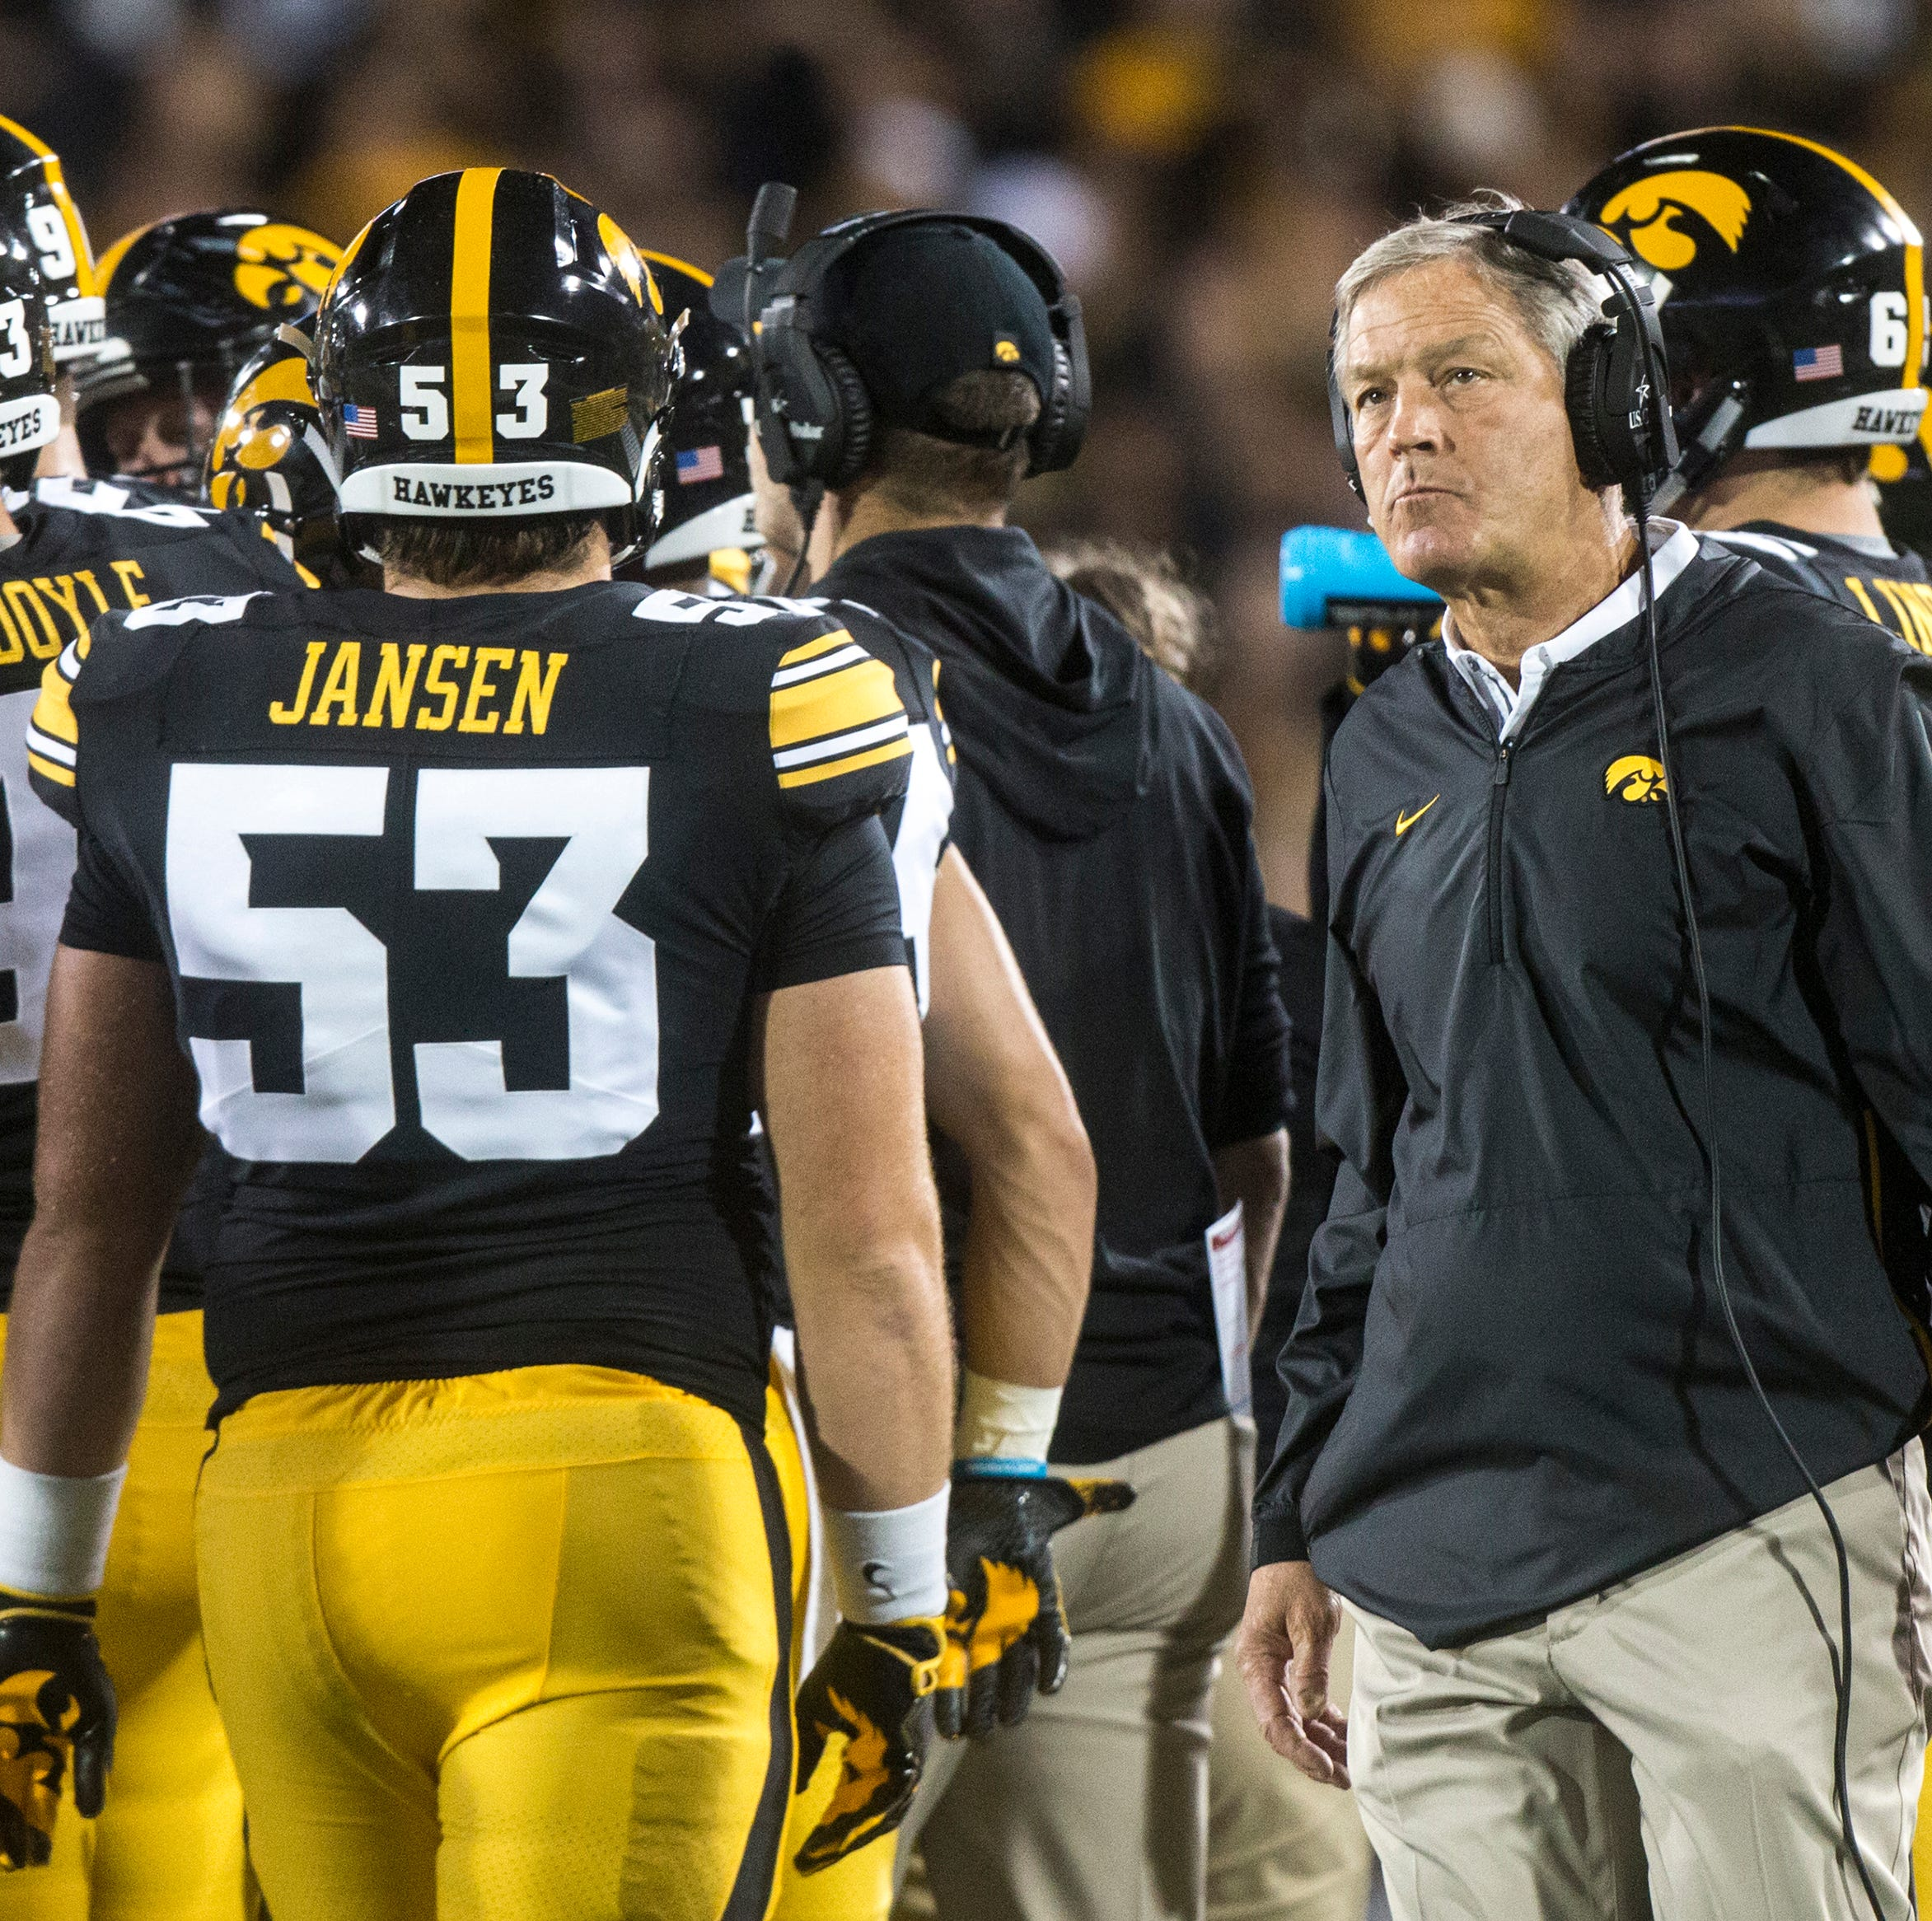 'We should be able to win these games': Iowa enters bye week with frustration — and reason for hope